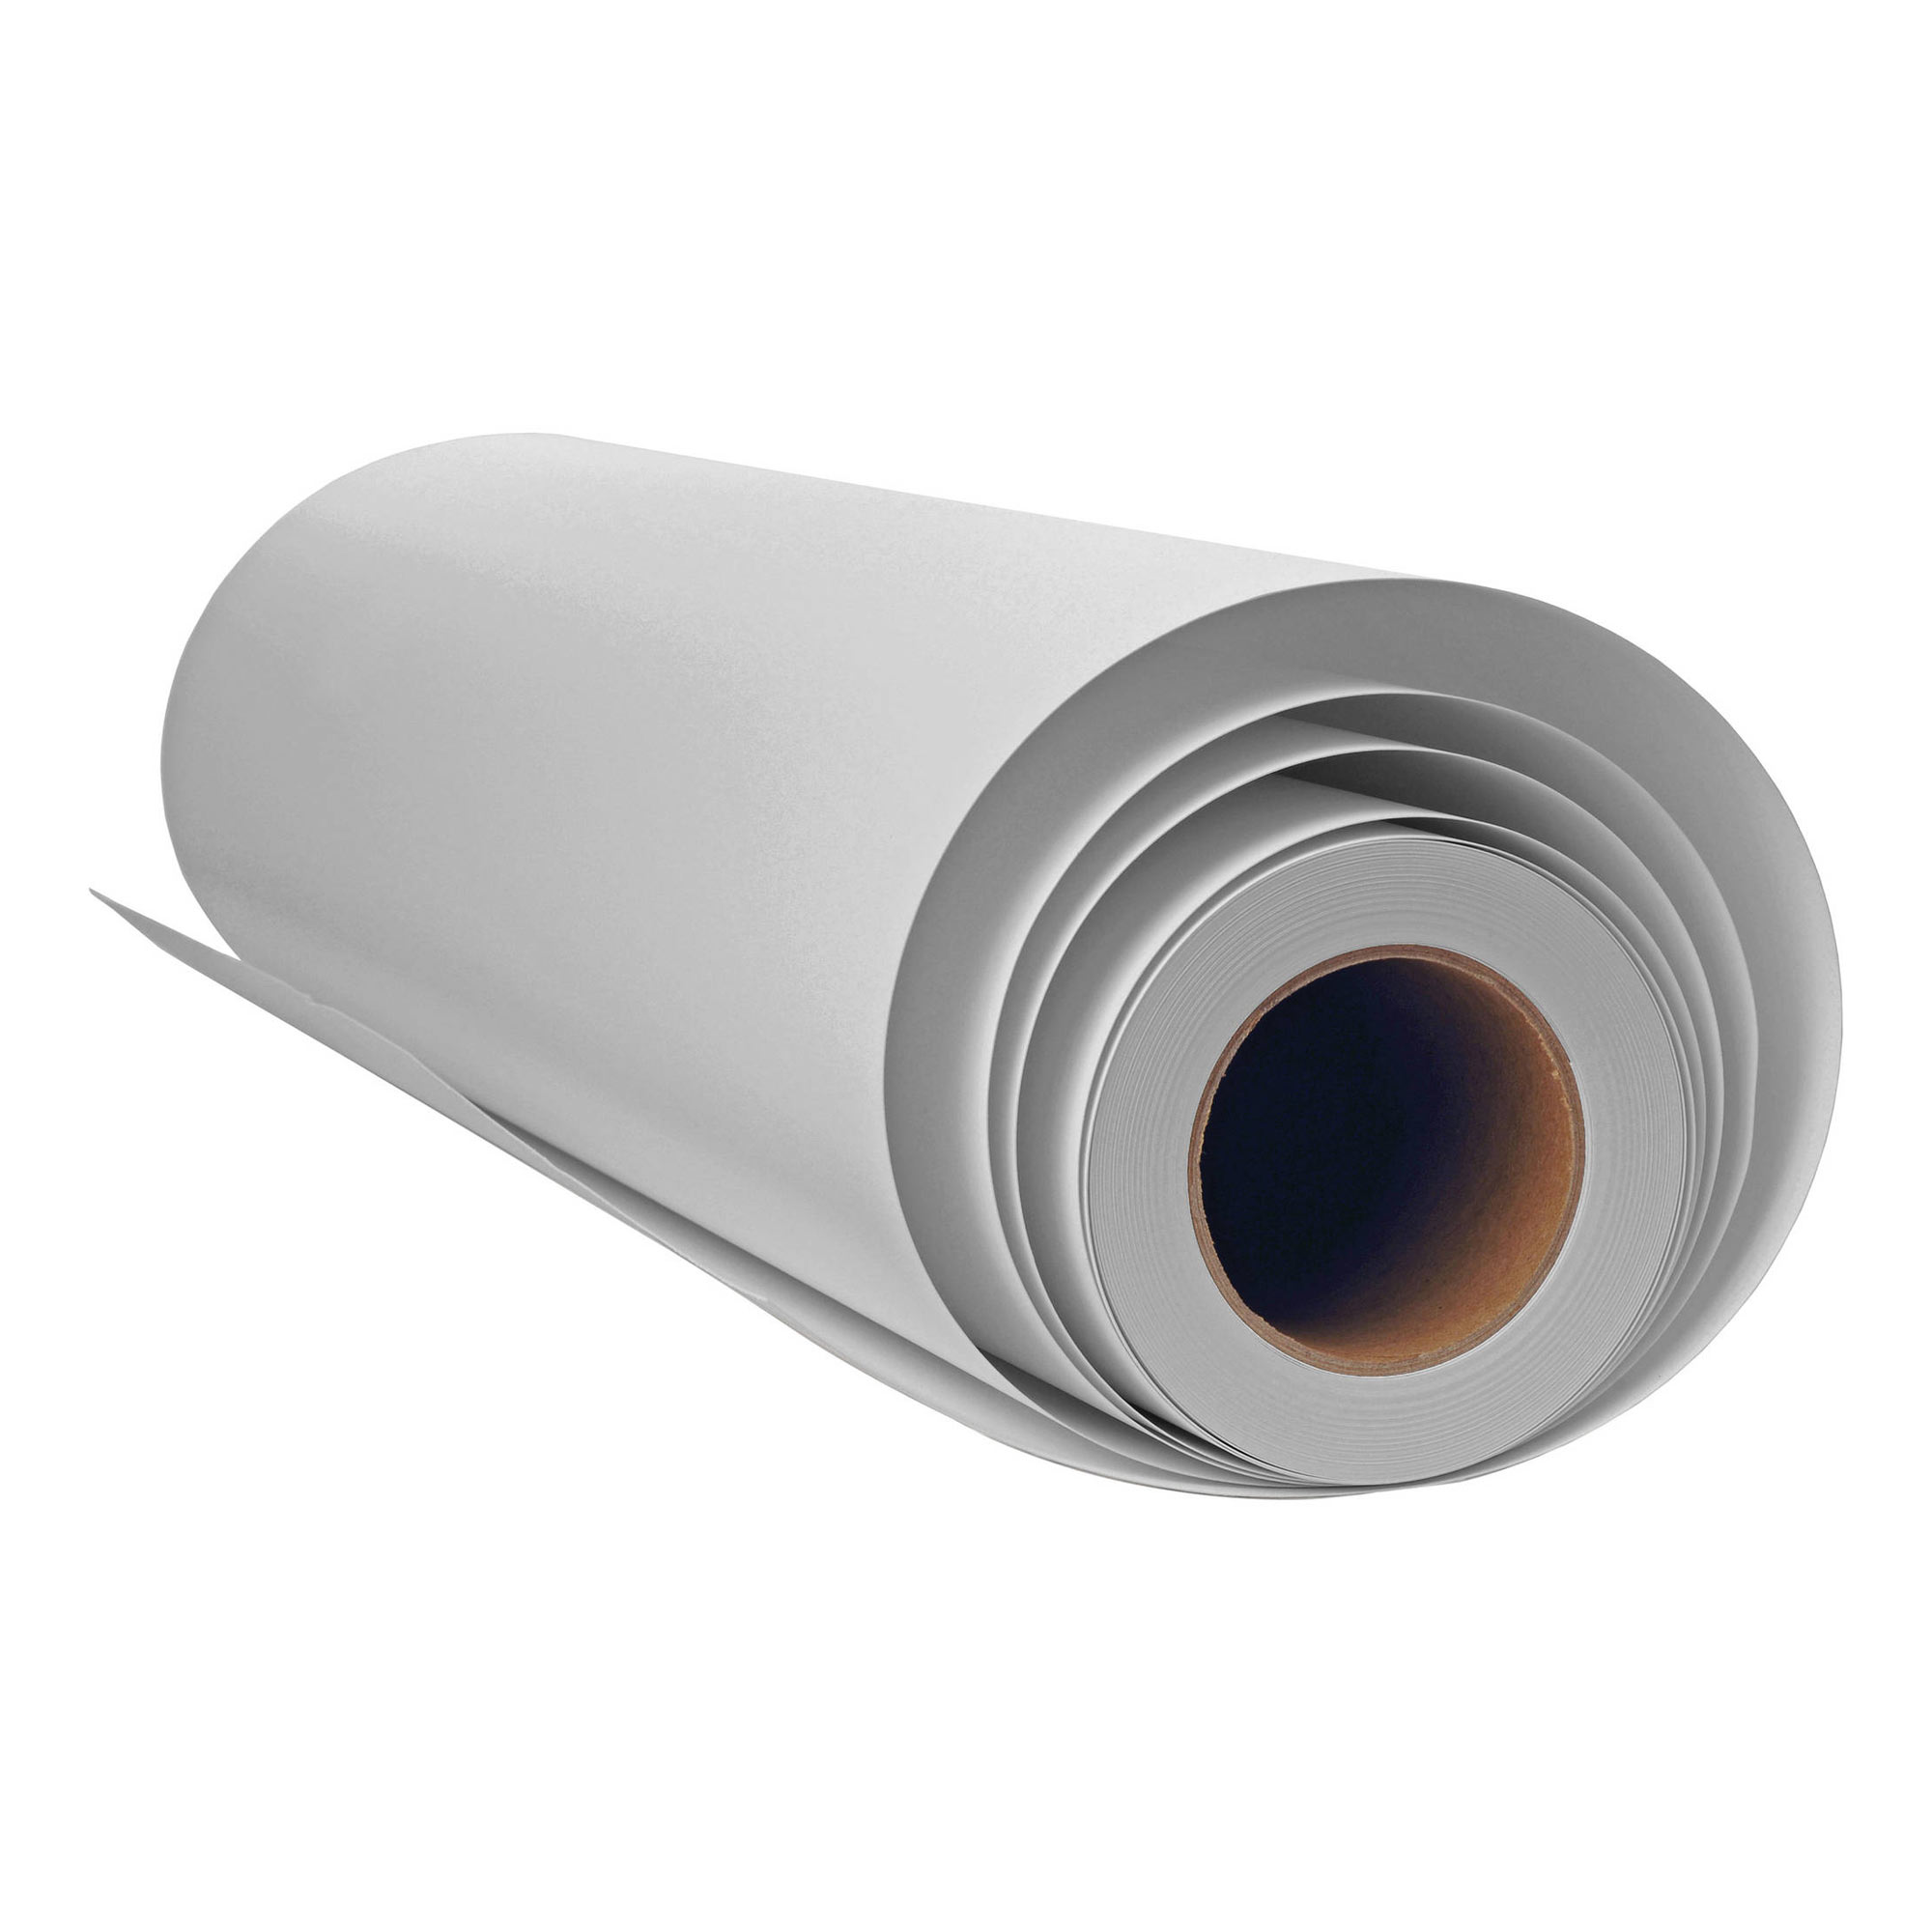 Slickrock Metallic Silver 300 Archival Inkjet Paper (17 In. x 50 ft. Roll)